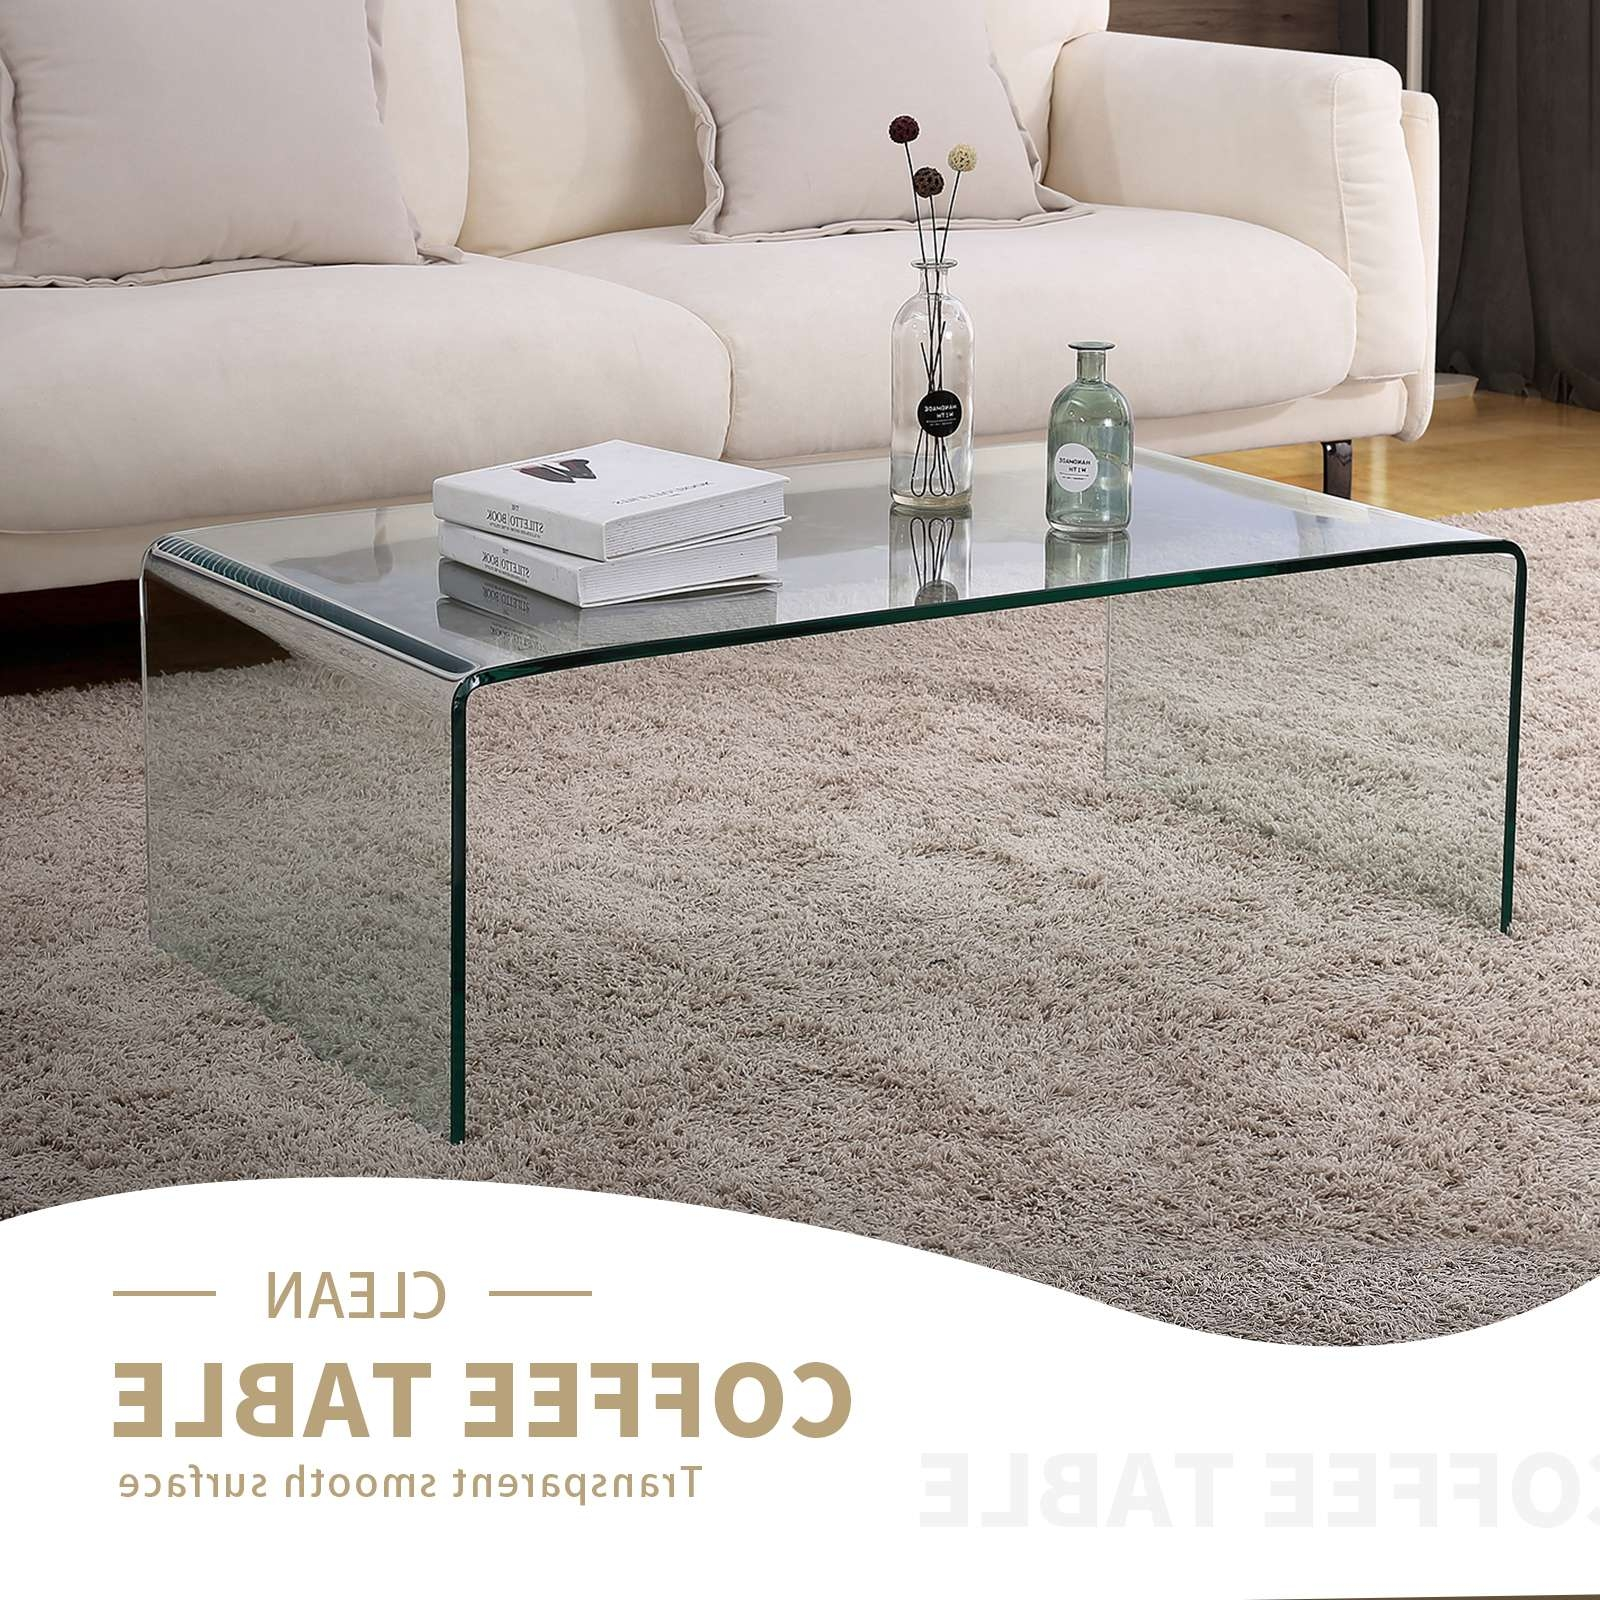 Design Rectangle Transparent Glass Coffee Table Living Room Throughout Famous Transparent Glass Coffee Tables (View 11 of 20)